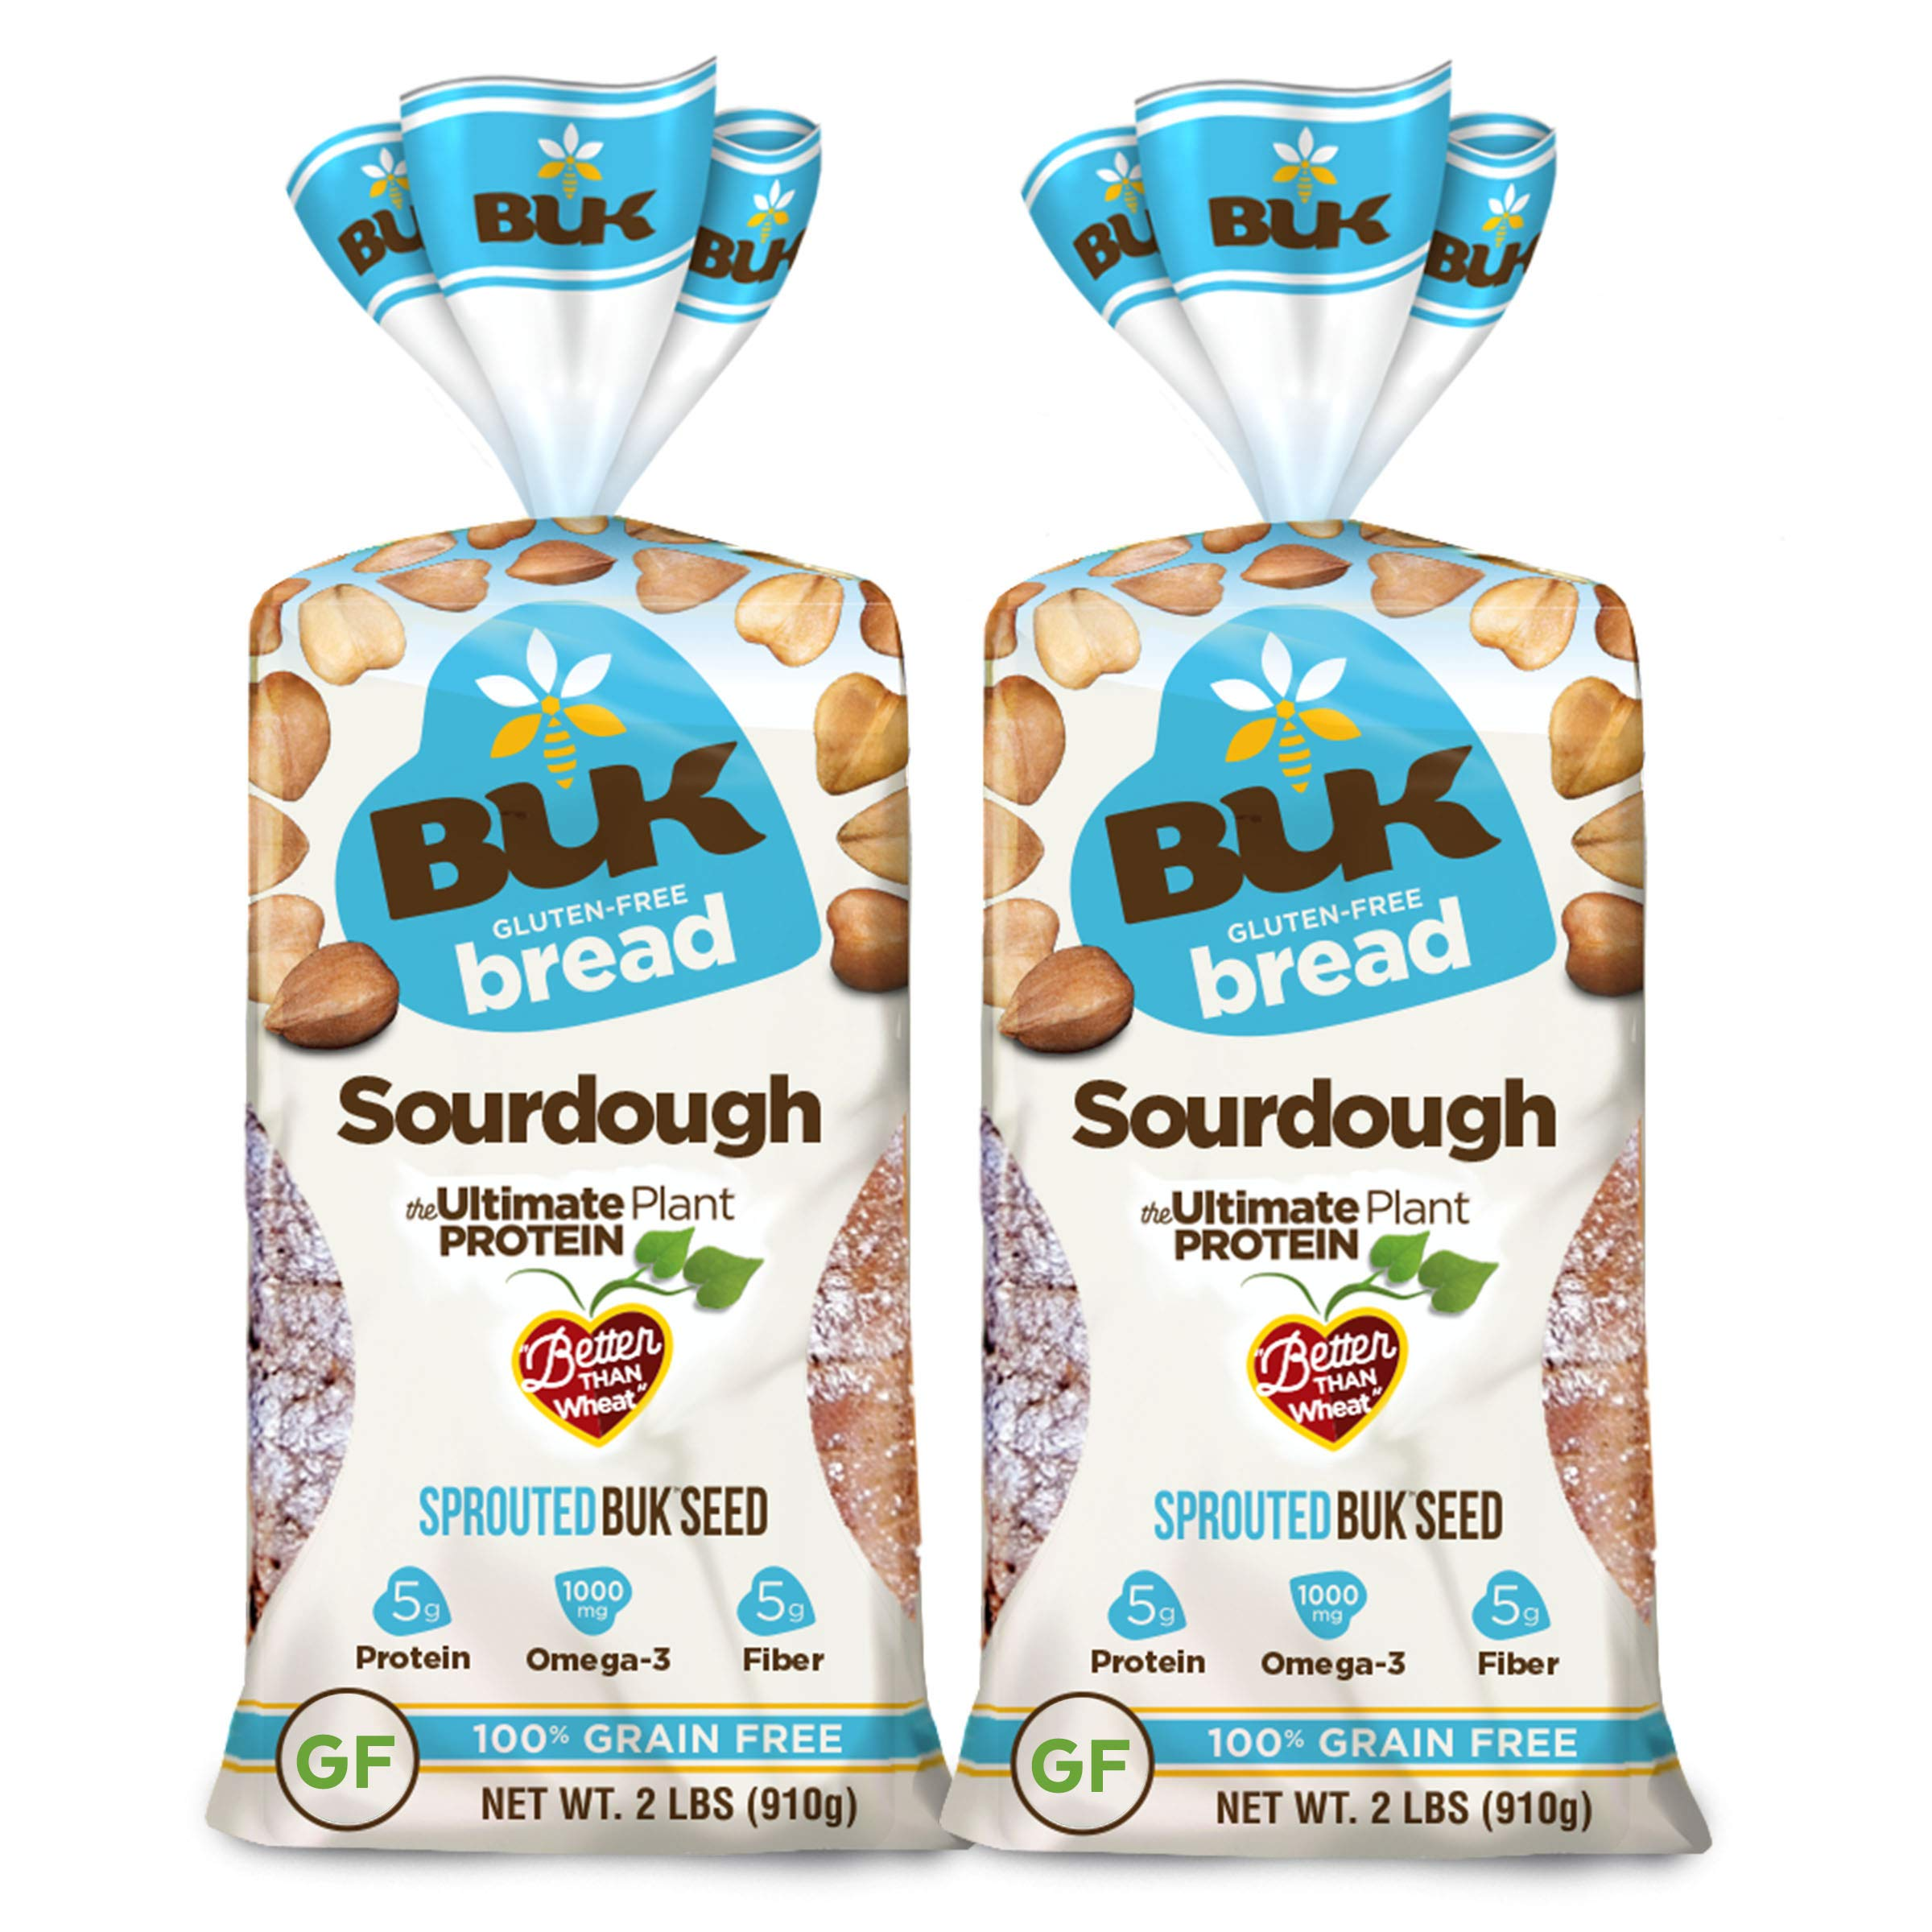 BUK Sourdough Sprouted Gluten Free Bread (2 loaves, 32 oz each) by BUK foods